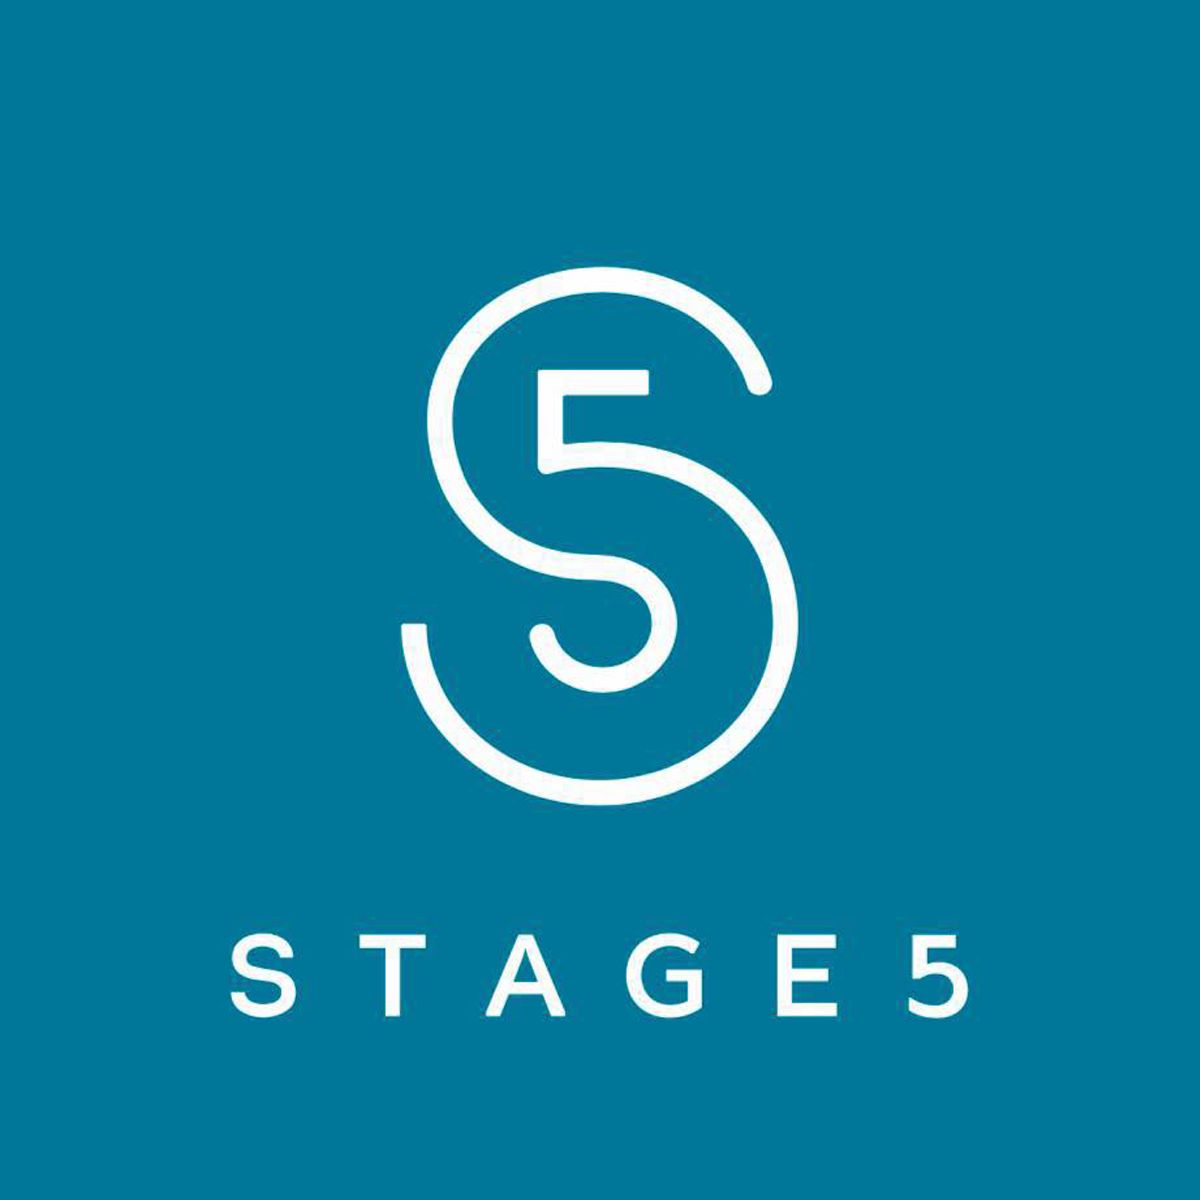 5 Stage5